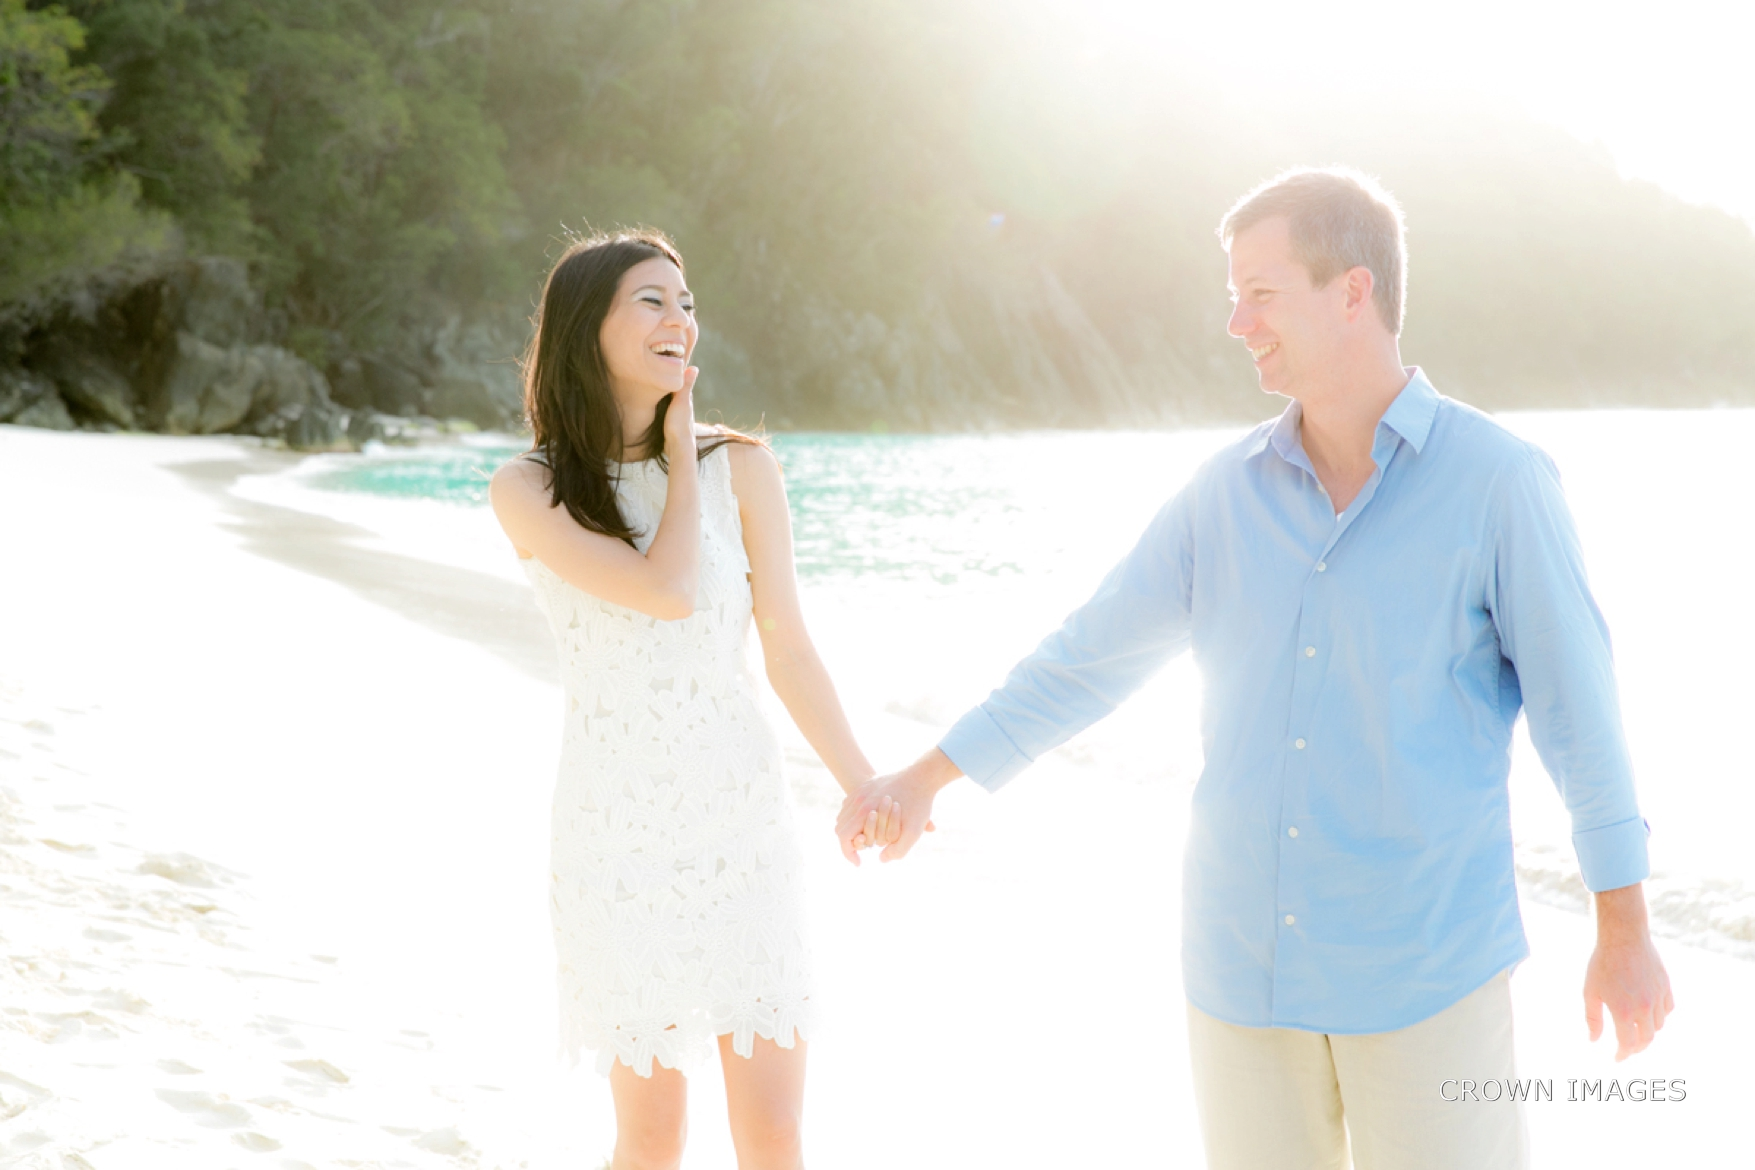 engagement_photos_virgin_islands_crown_images_0622.jpg